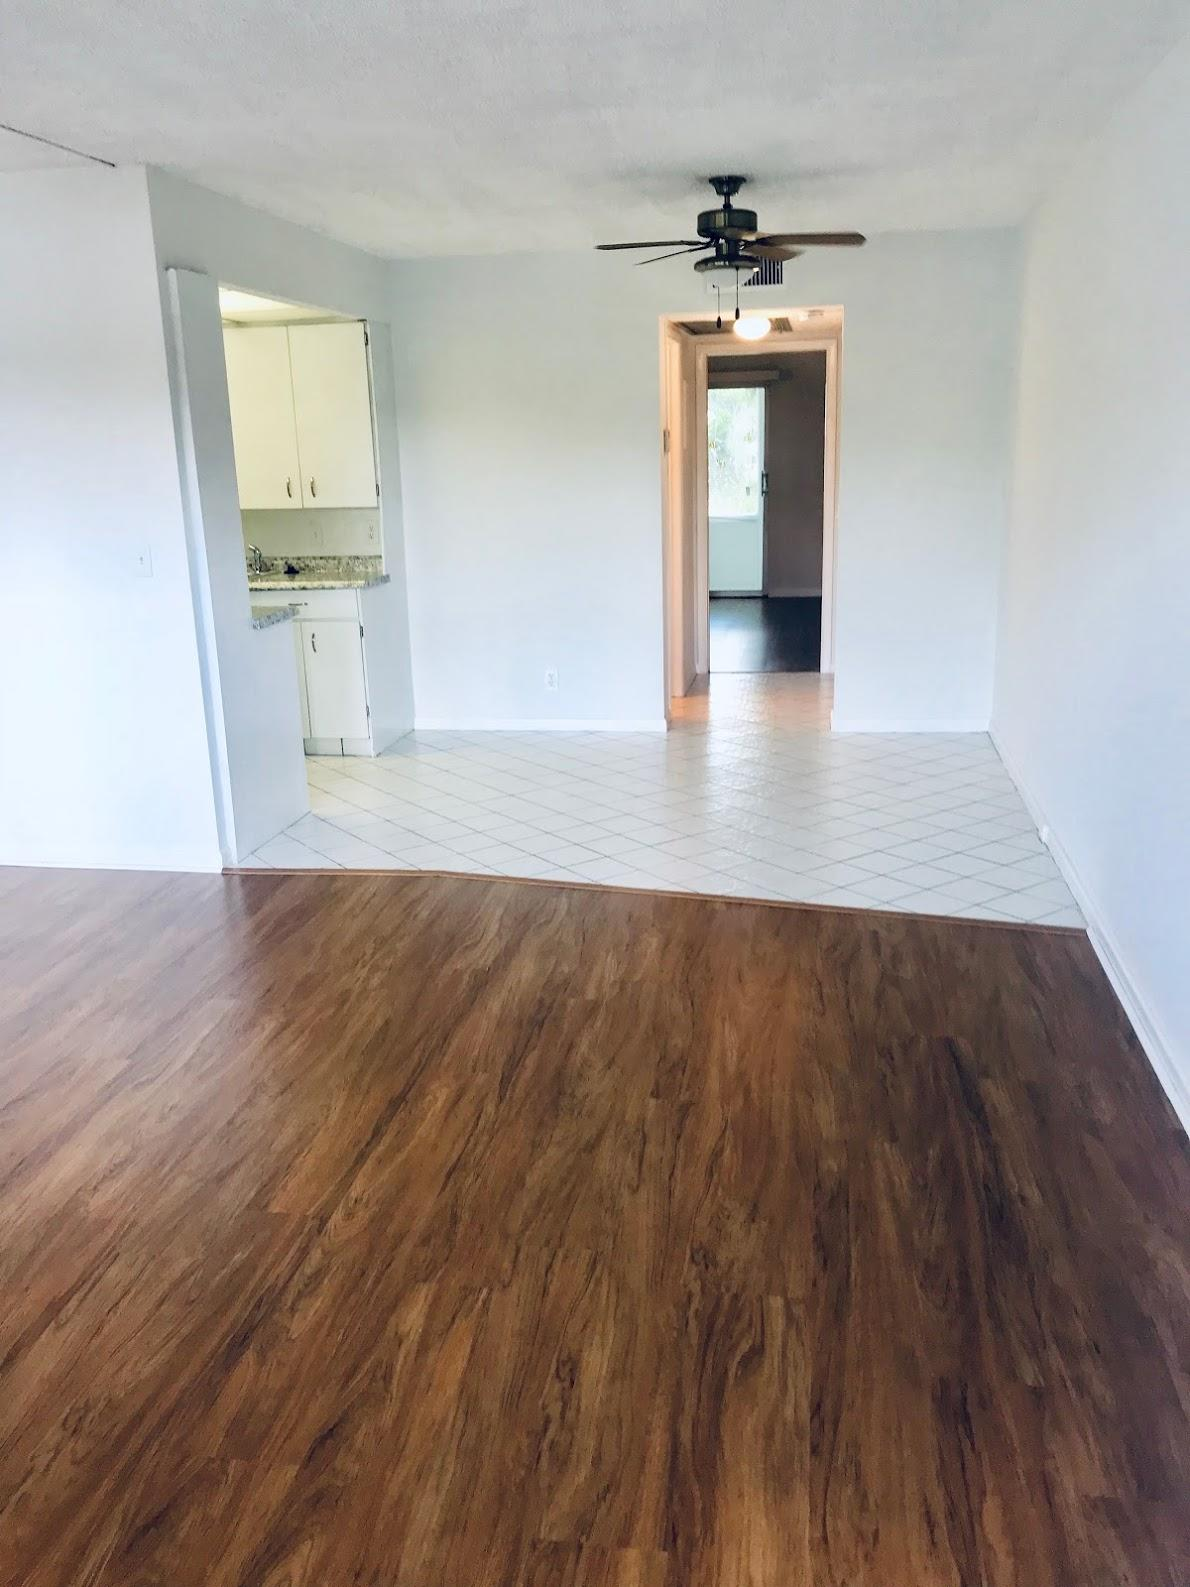 1109 Newport U, 1109 - Deerfield Beach, Florida